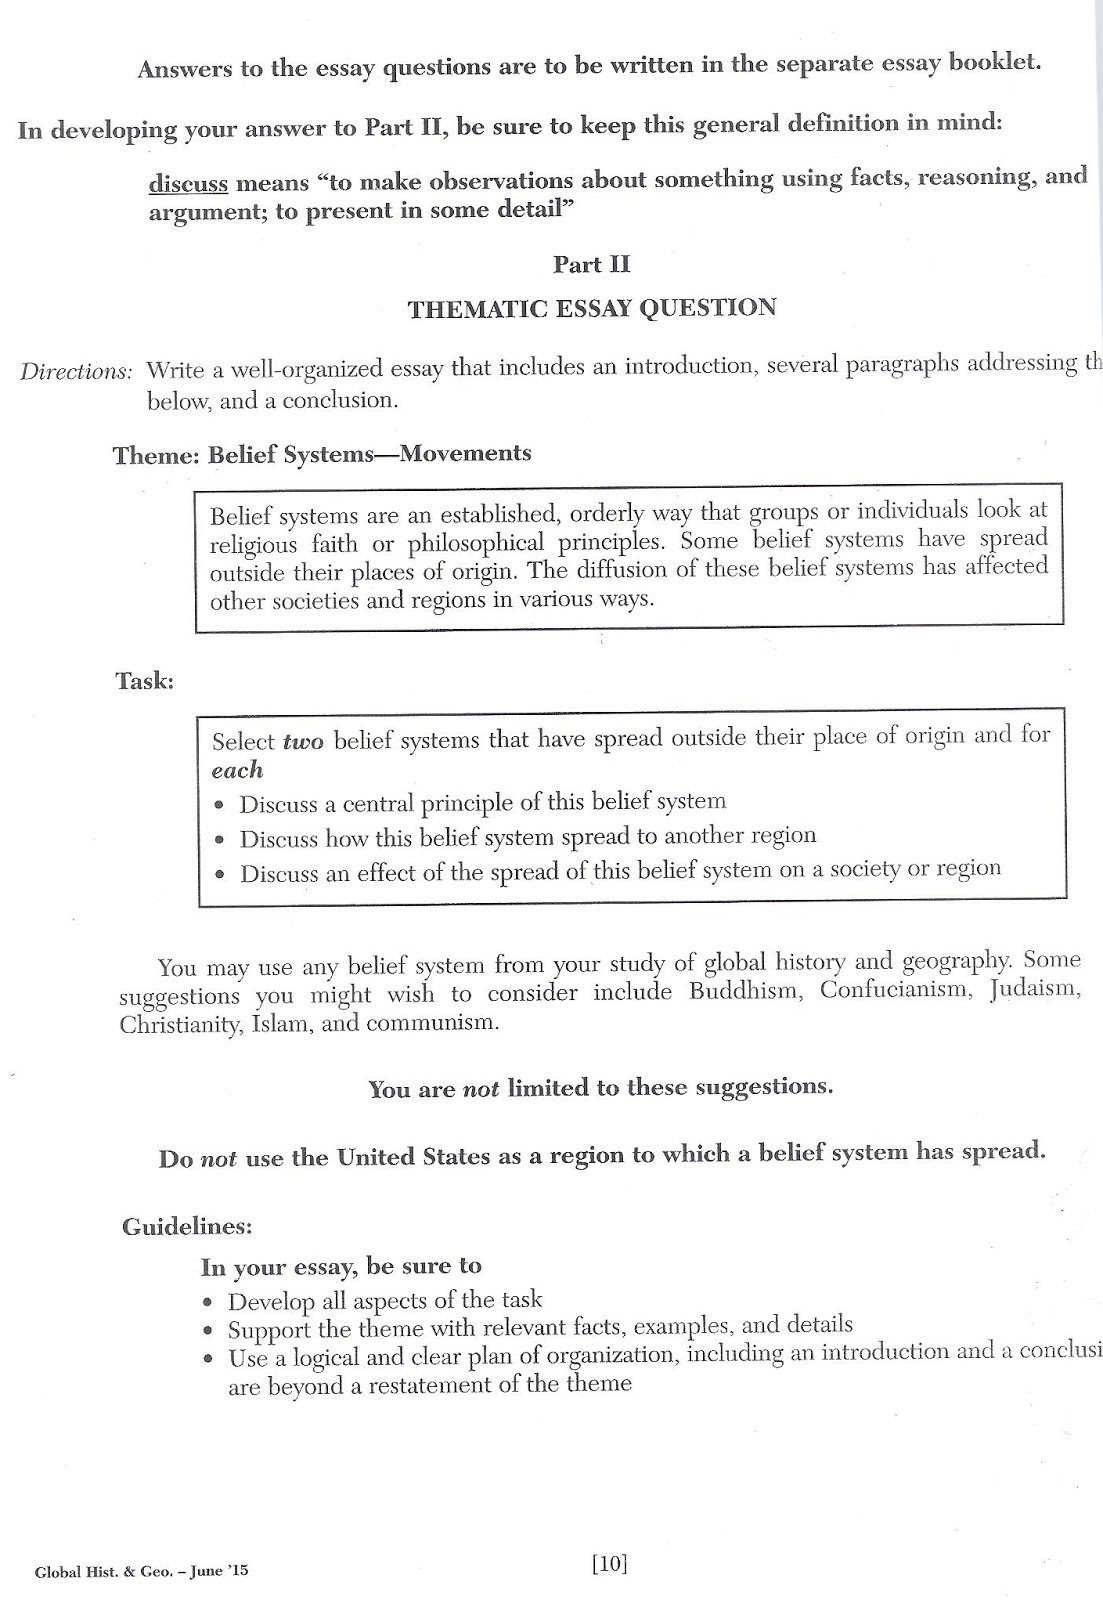 us history thematic essay questions The two documents below both list hundreds of ap us history essay questions the first document includes all of the real ap us history exam essay questions from 2001.